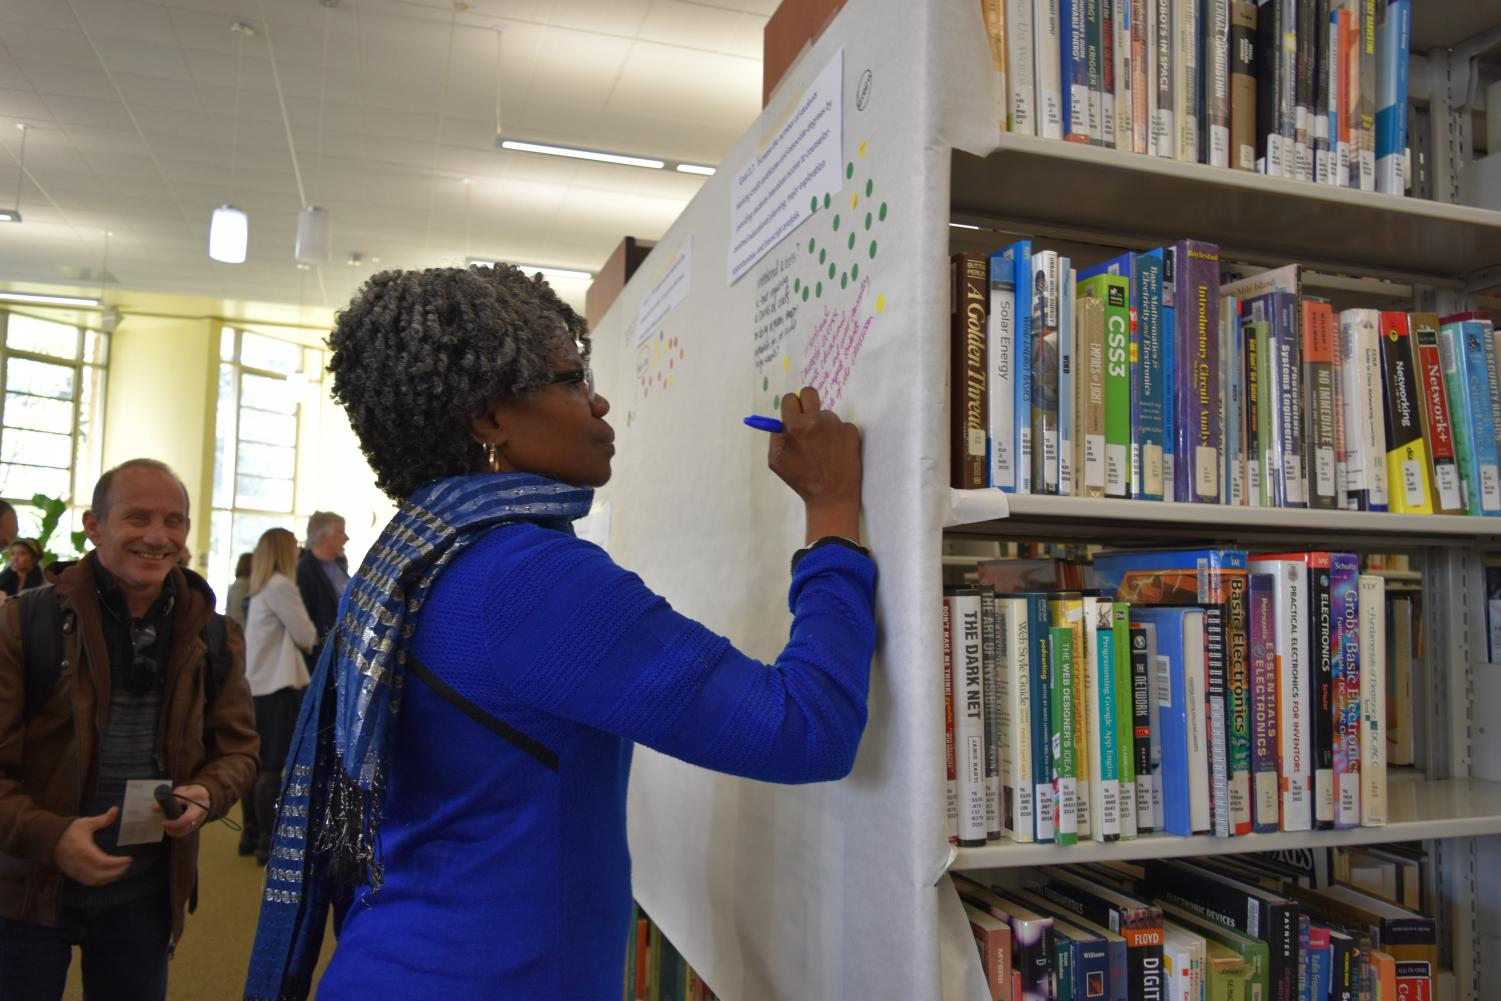 Health and human services department Chairperson Aminta Mickles writes her thoughts about the Strategic Plan  presented in the Library on Jan. 24.